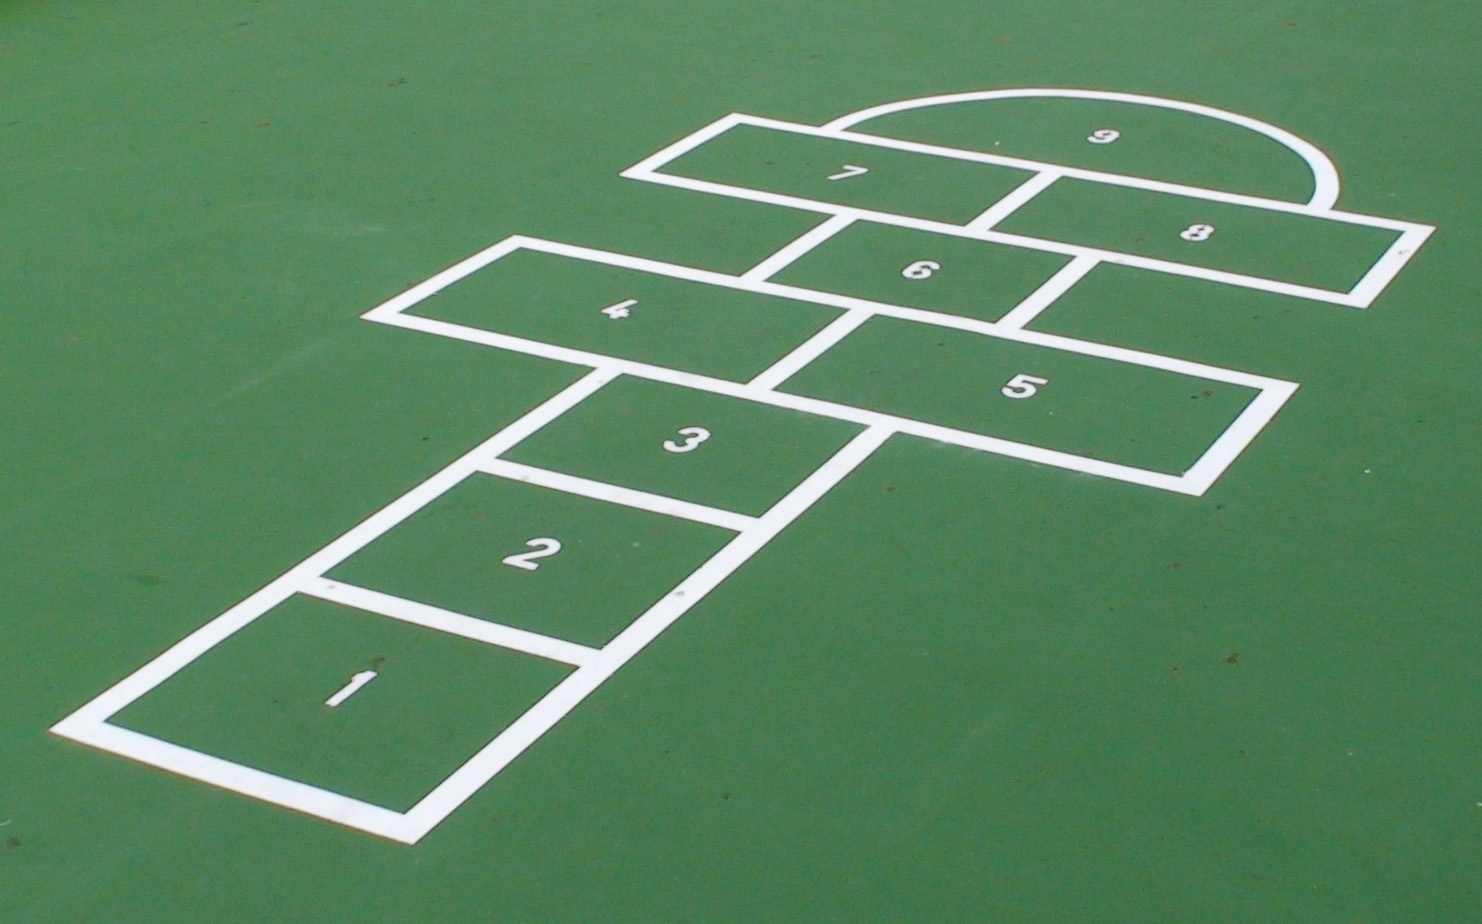 How To Play Hopscotch: Rules And Variations